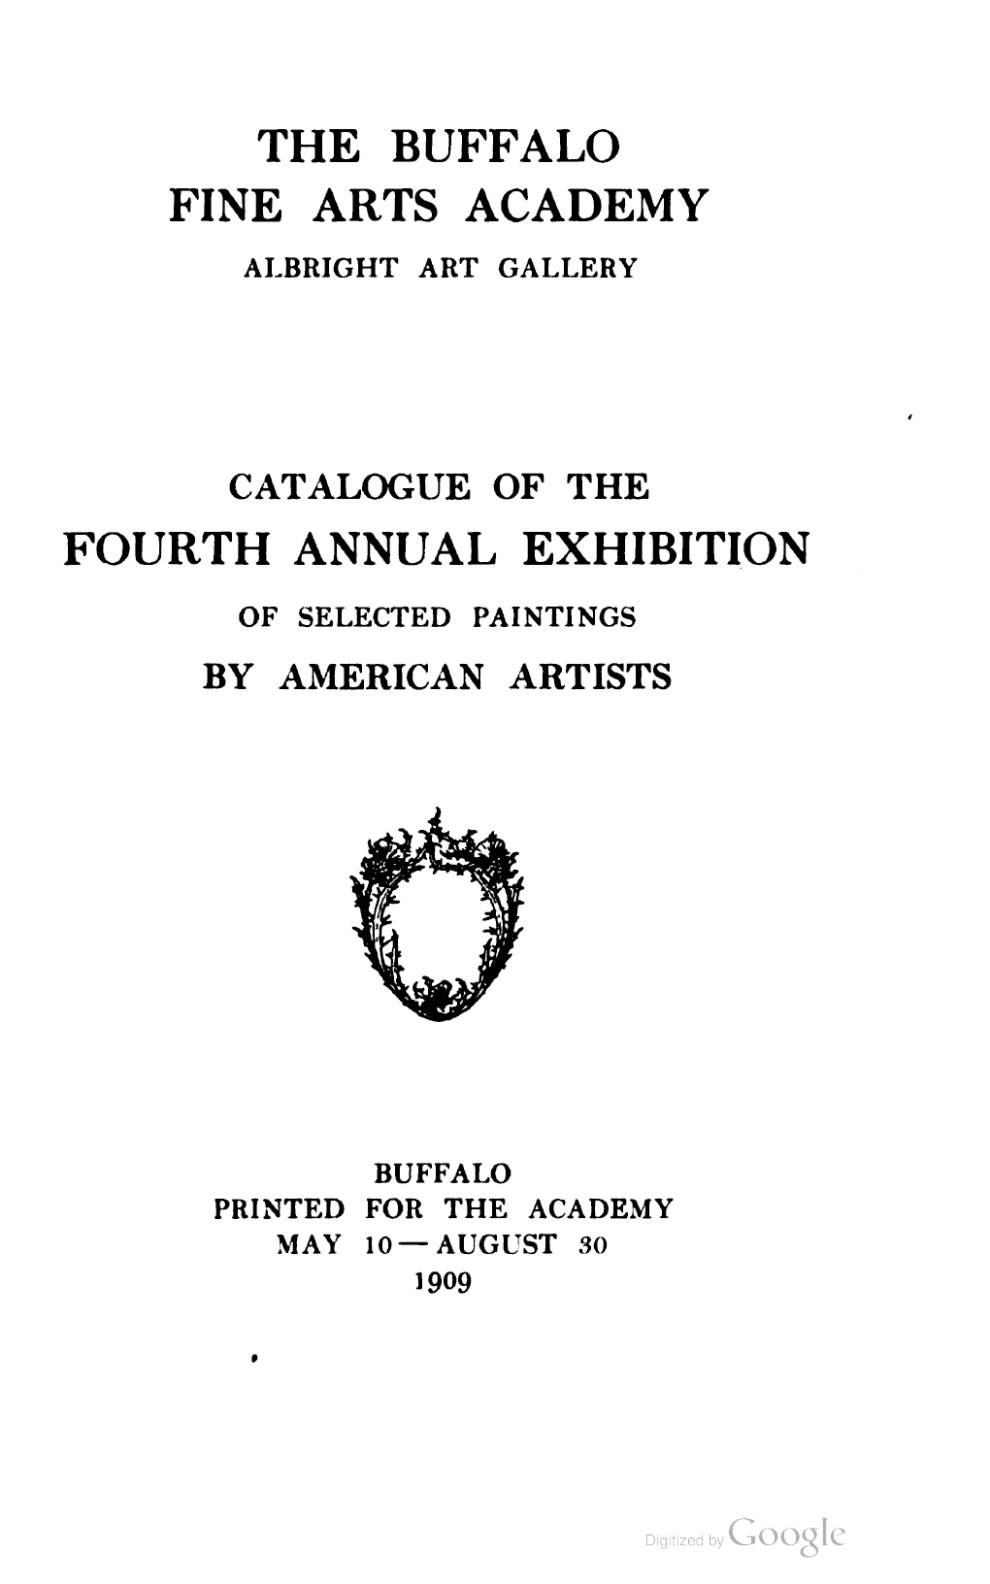 "1909 Buffalo Fine Arts Academy, Albright Art Gallery, Buffalo, NY, ""Fourth Annual Exhibition of Selected Paintings by American Artists"", May 10 – August 30"